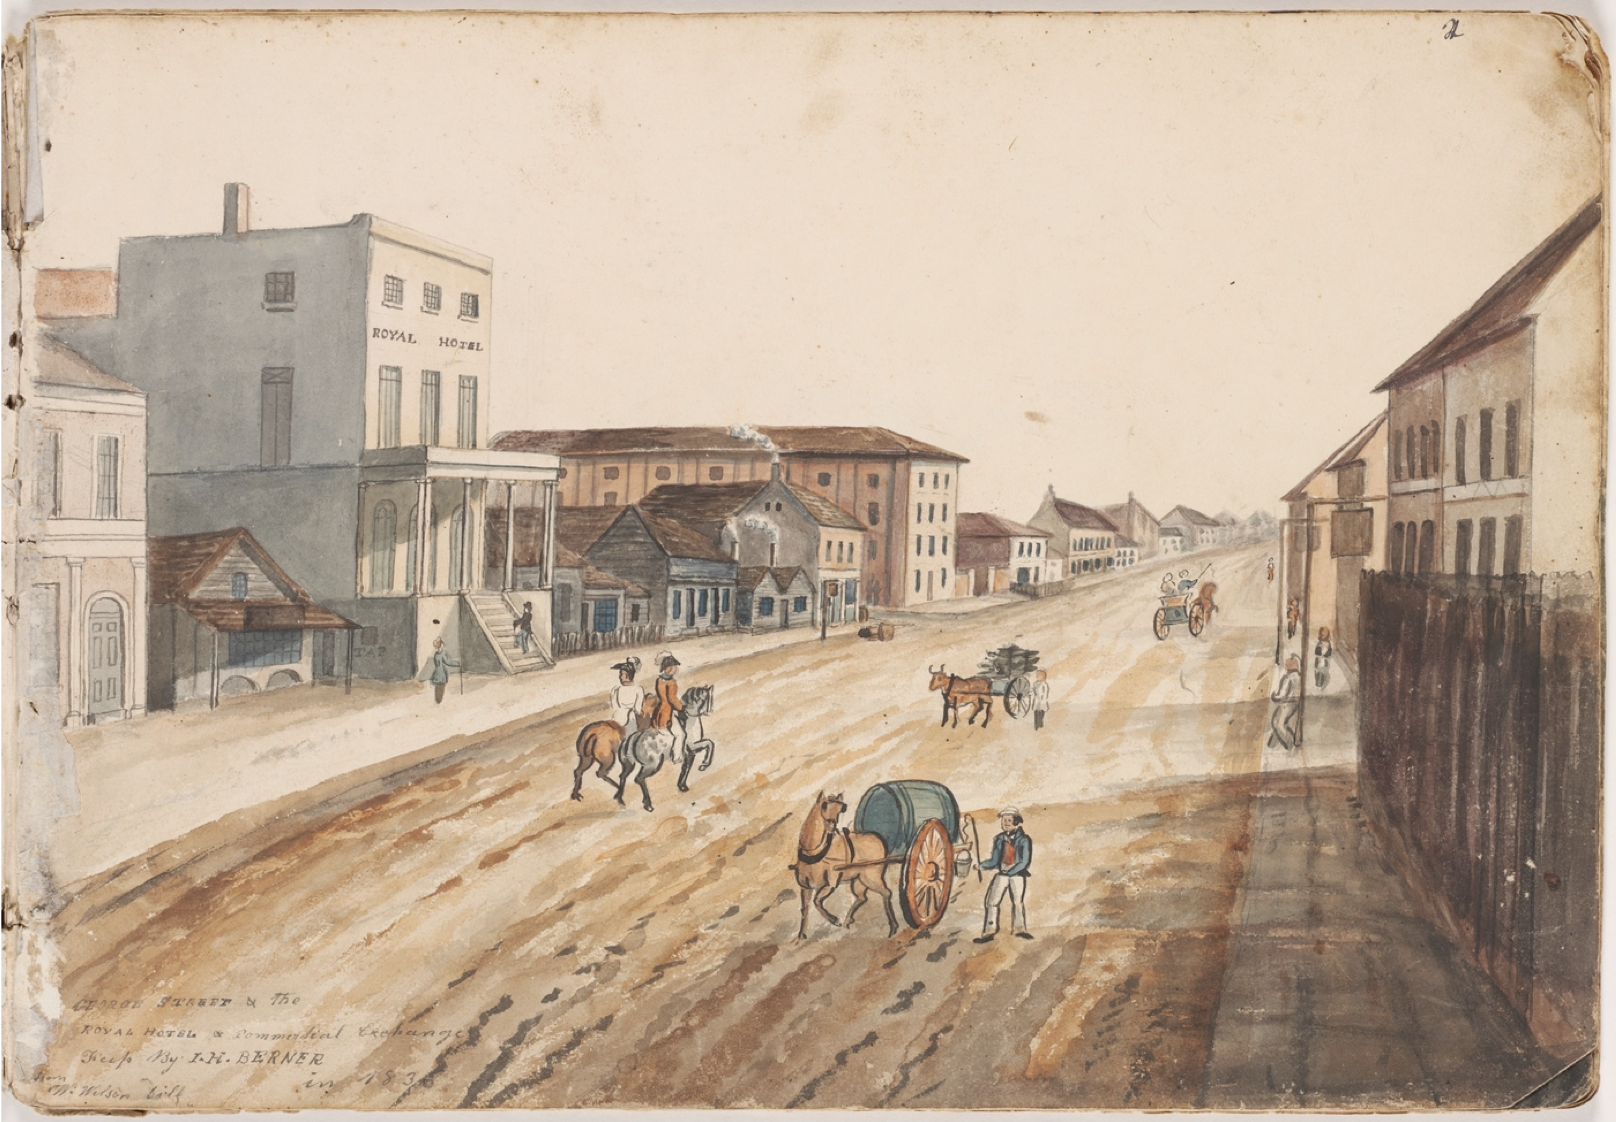 George Roberts, George Street, Sydney, Royal Hotel, Commercial Exchange, 1836, Streetscape, New South Wales, St. John's Cemetery Project, Old Parramattans, Sarah Moses, Tell the World I Died for Love, Died of Broken Heart